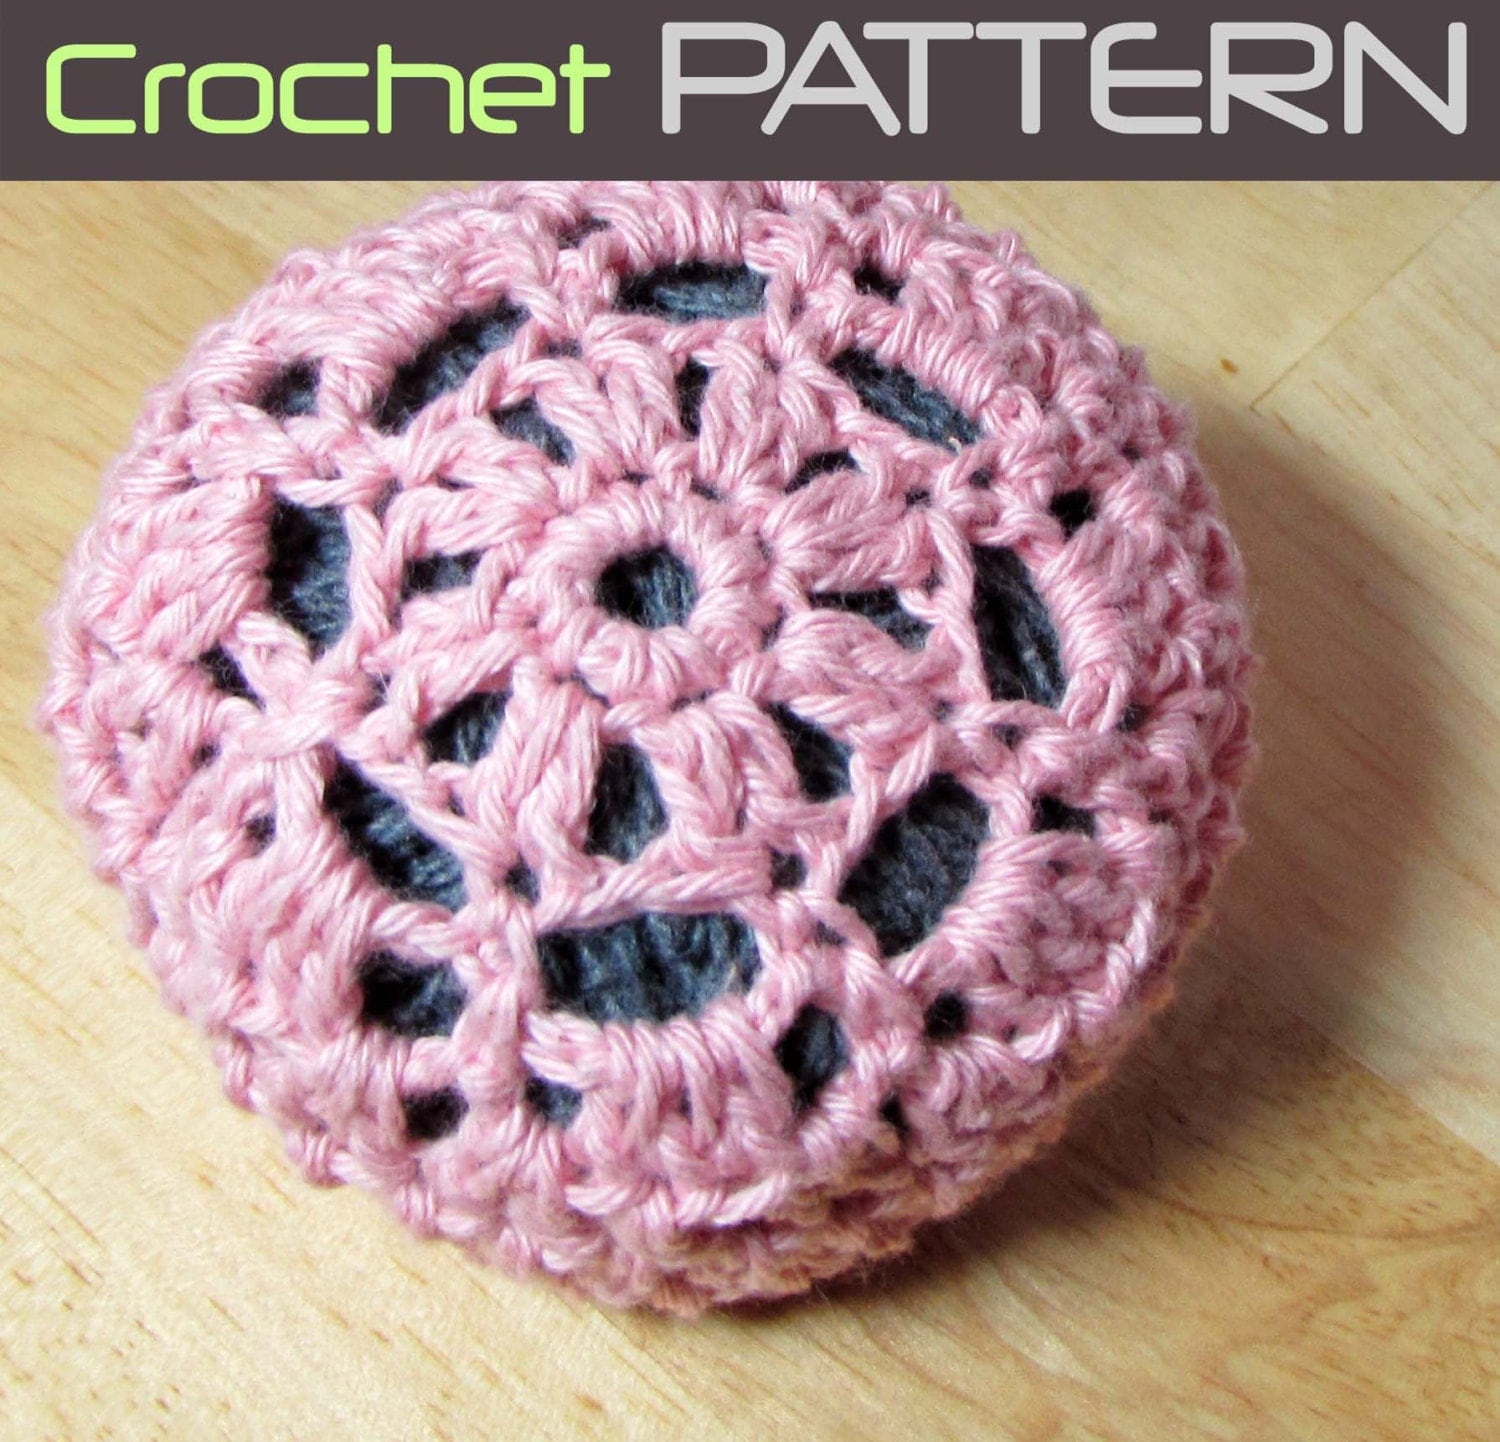 Crochet Hair Net Bun Cover Pattern : Crochet Pattern for Hair Bun Cover Floral Hair by KnitteryDesigns